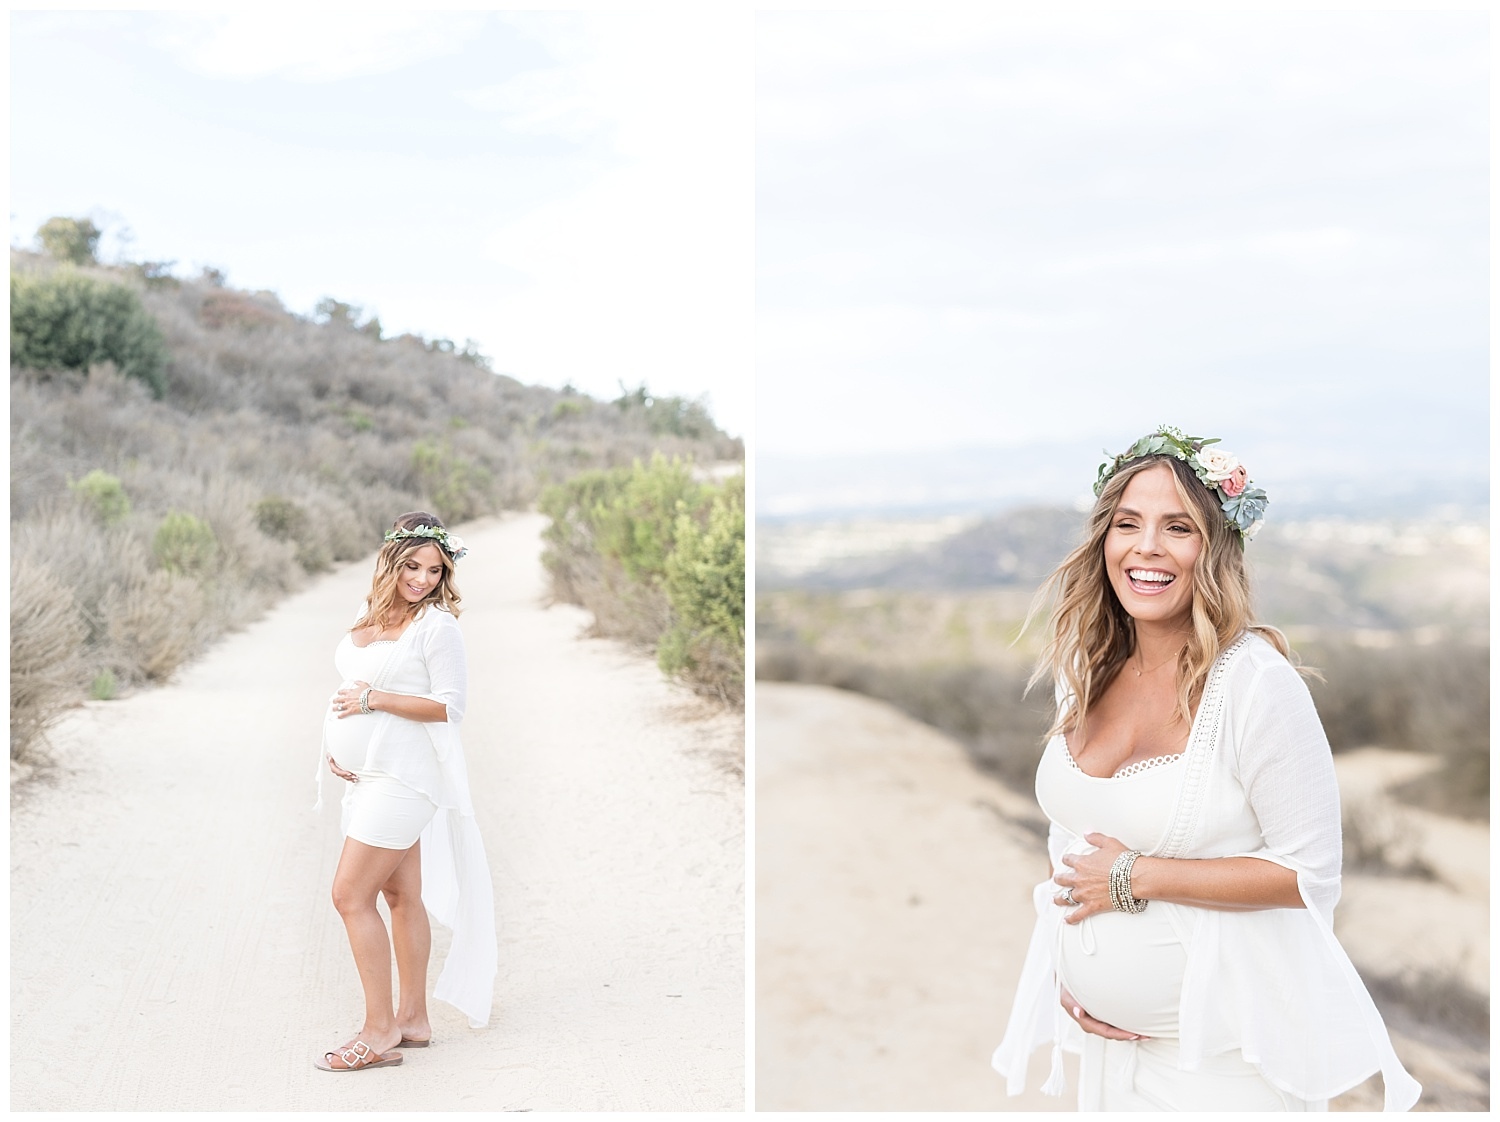 ashley - laguna beach, orange county hiking trail - maternity-0001